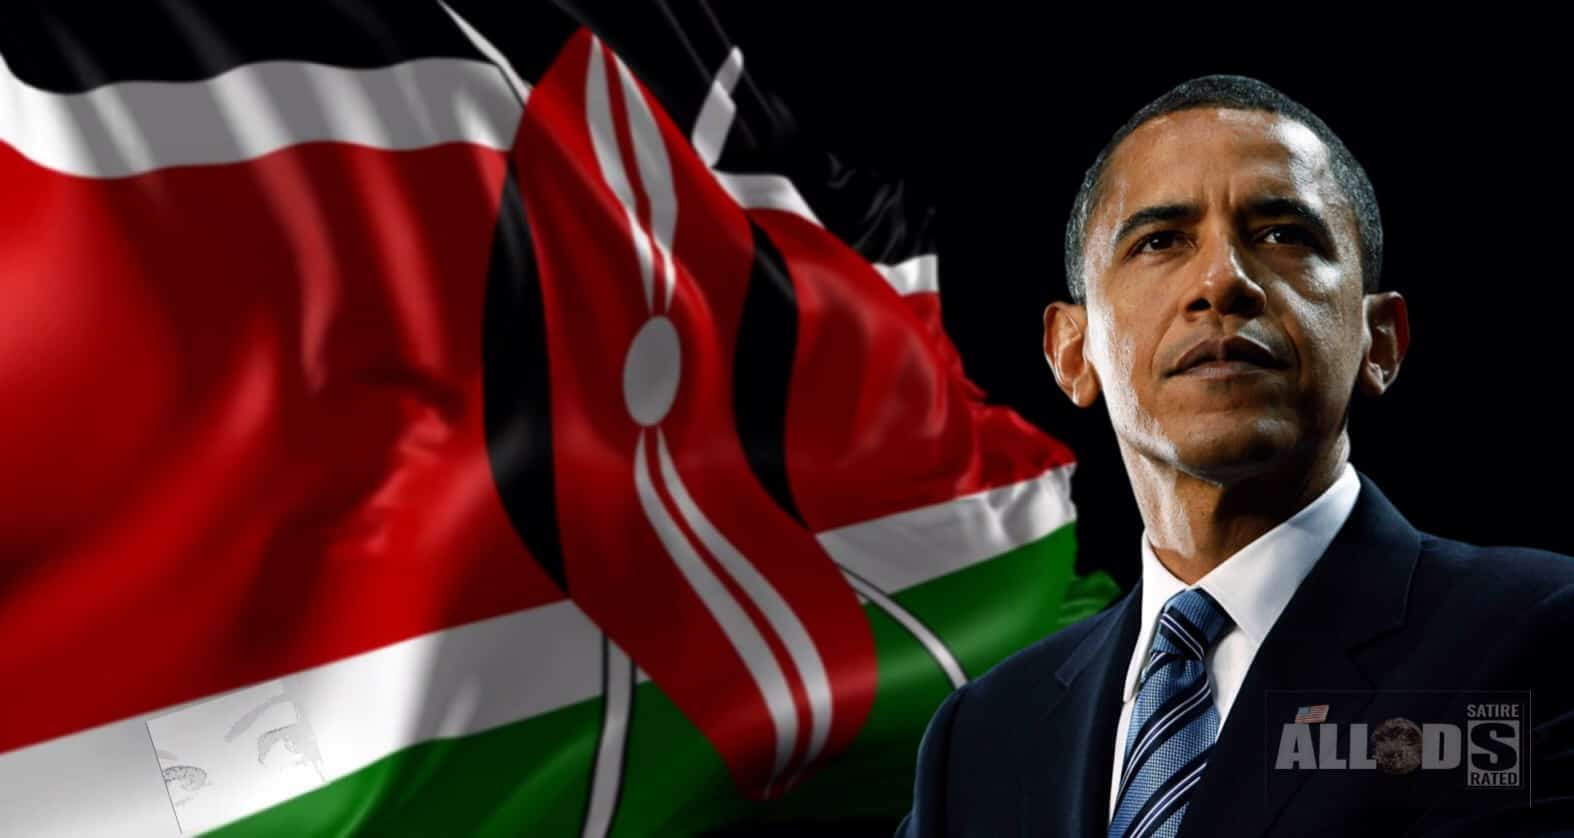 With Possible Indictment Looming, Obama Flees To Kenya